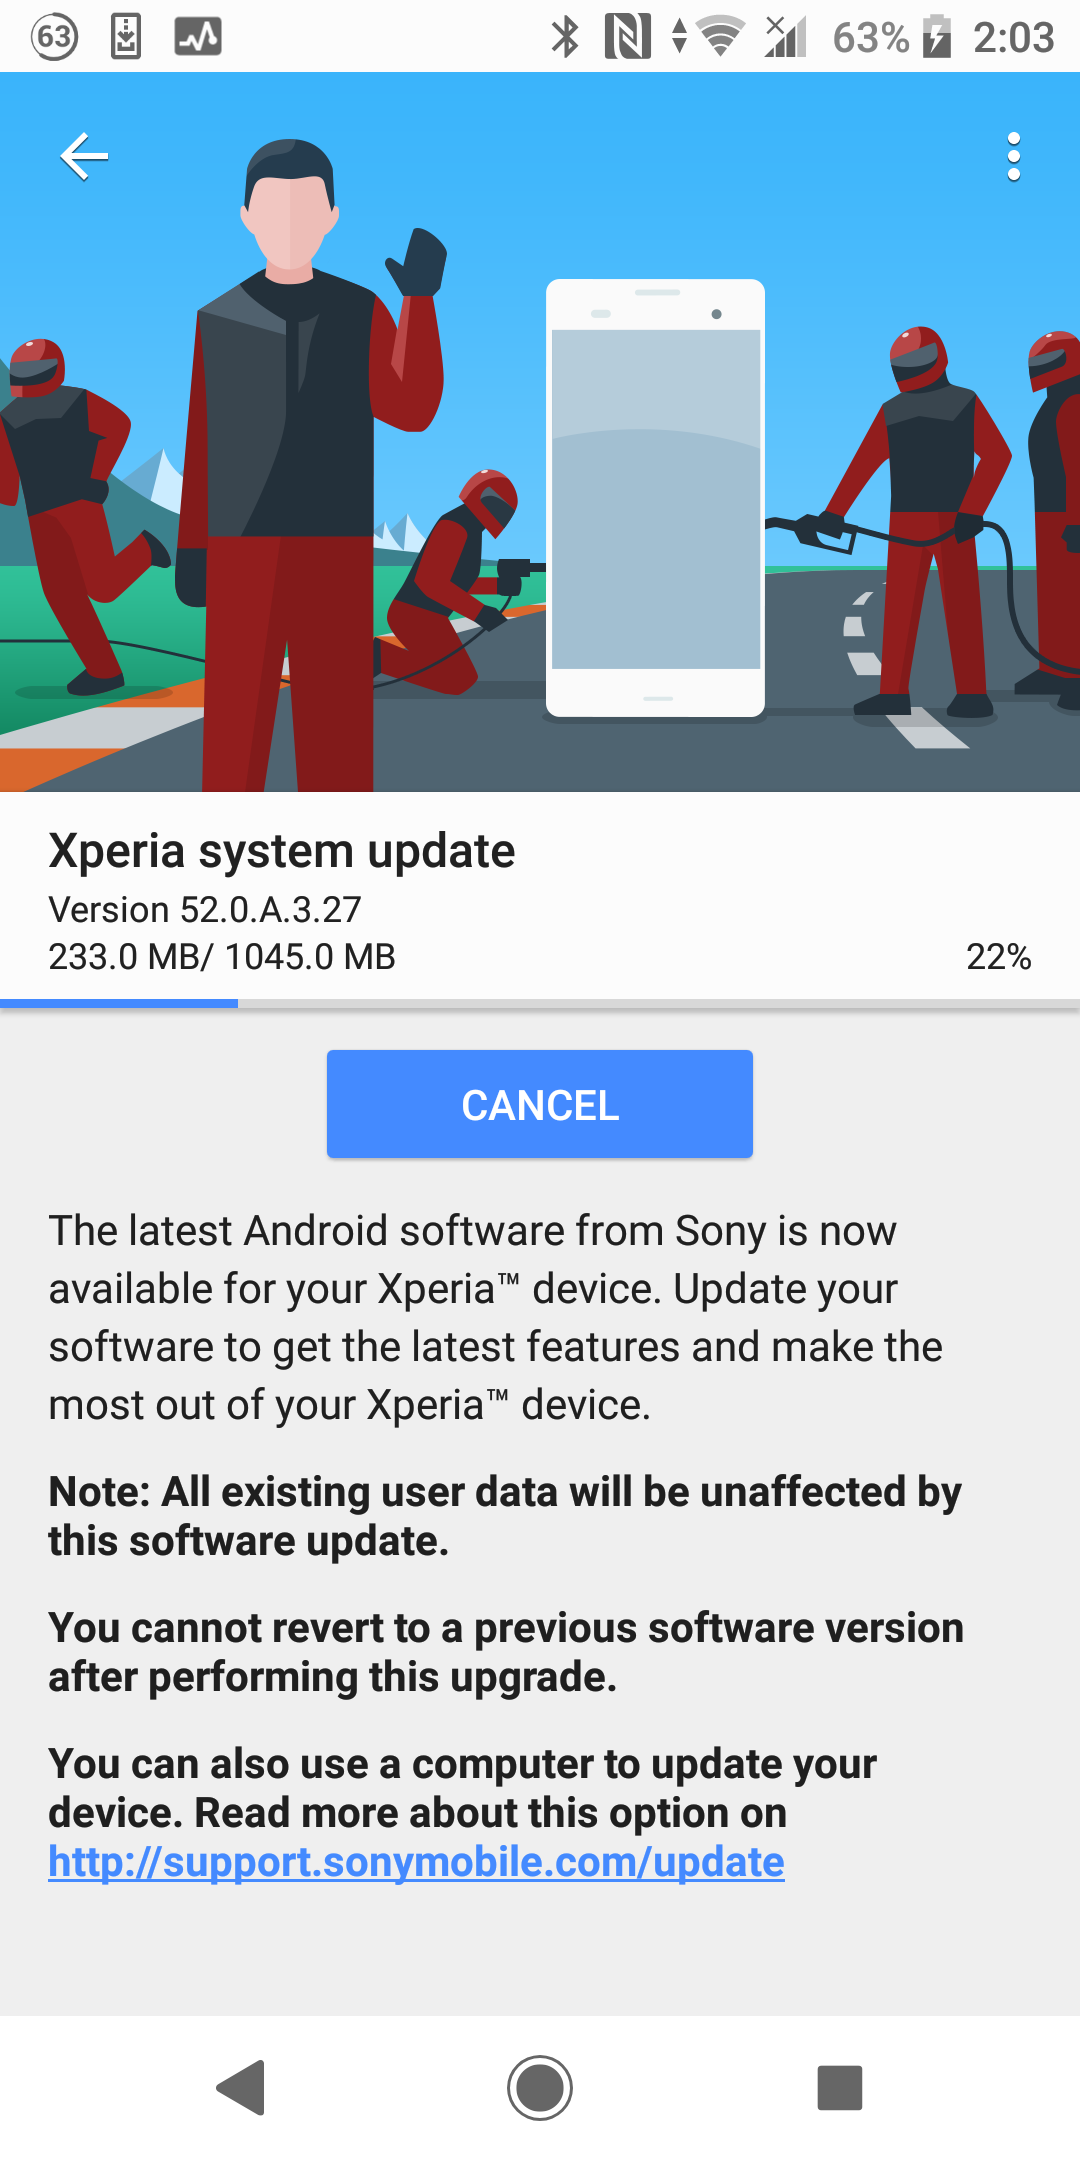 Sony Xperia XZ2 and XZ2 Compact now receiving Android 9 Pie